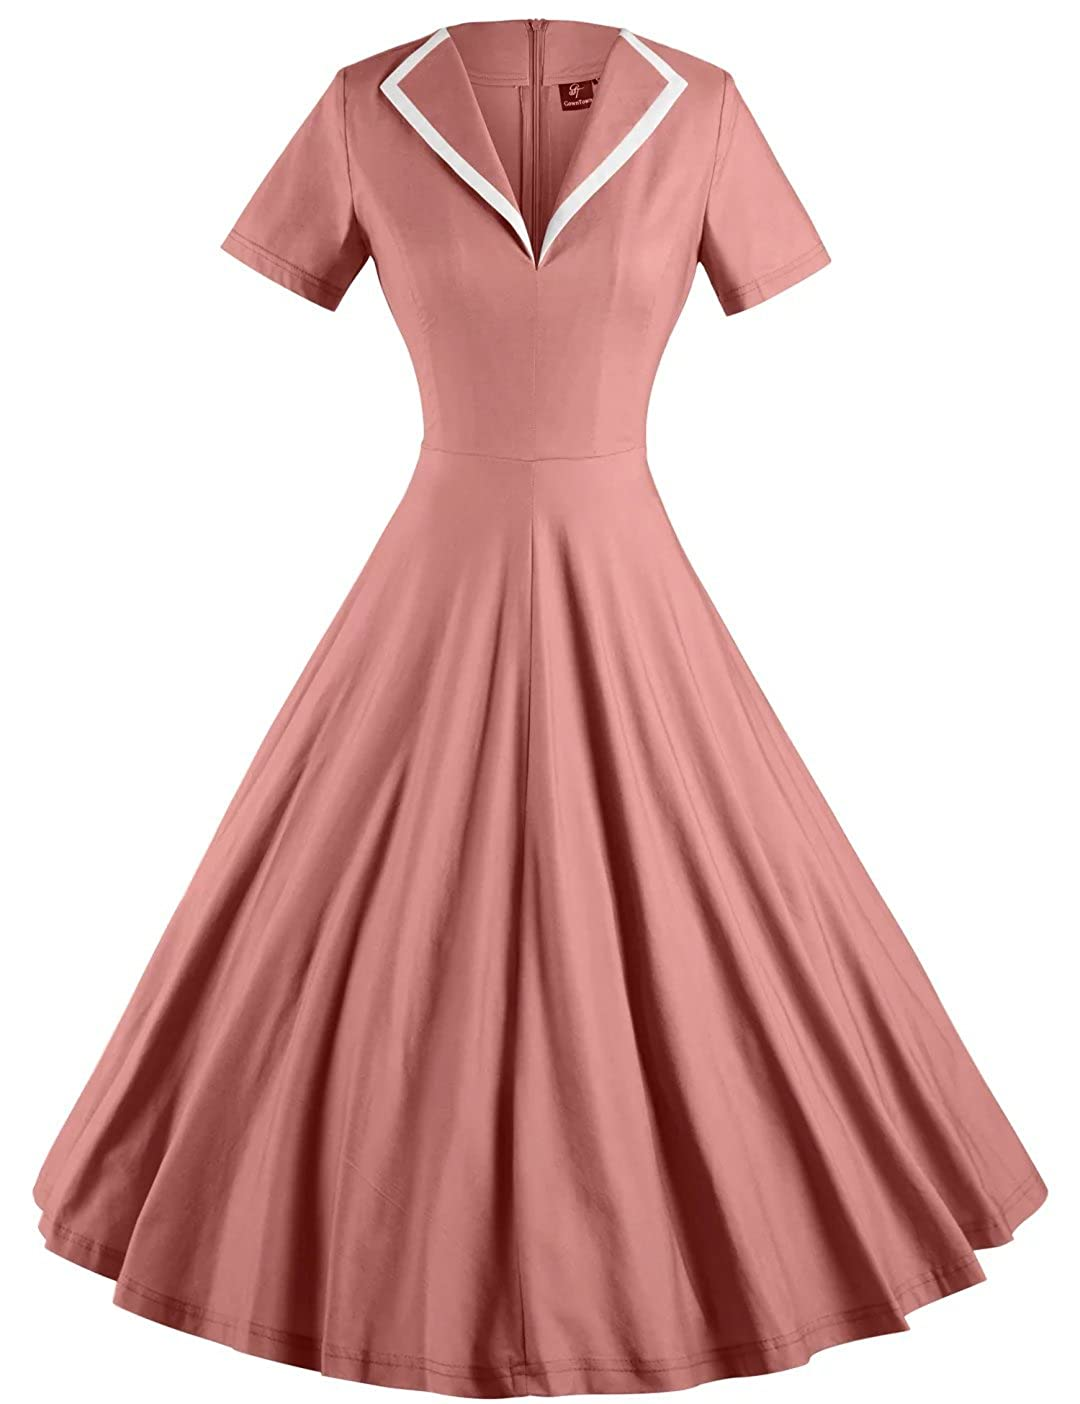 1950s House Dresses and Aprons History GownTown Womens 1950s Retro Vintage V-Neck Party Swing Dress $35.98 AT vintagedancer.com